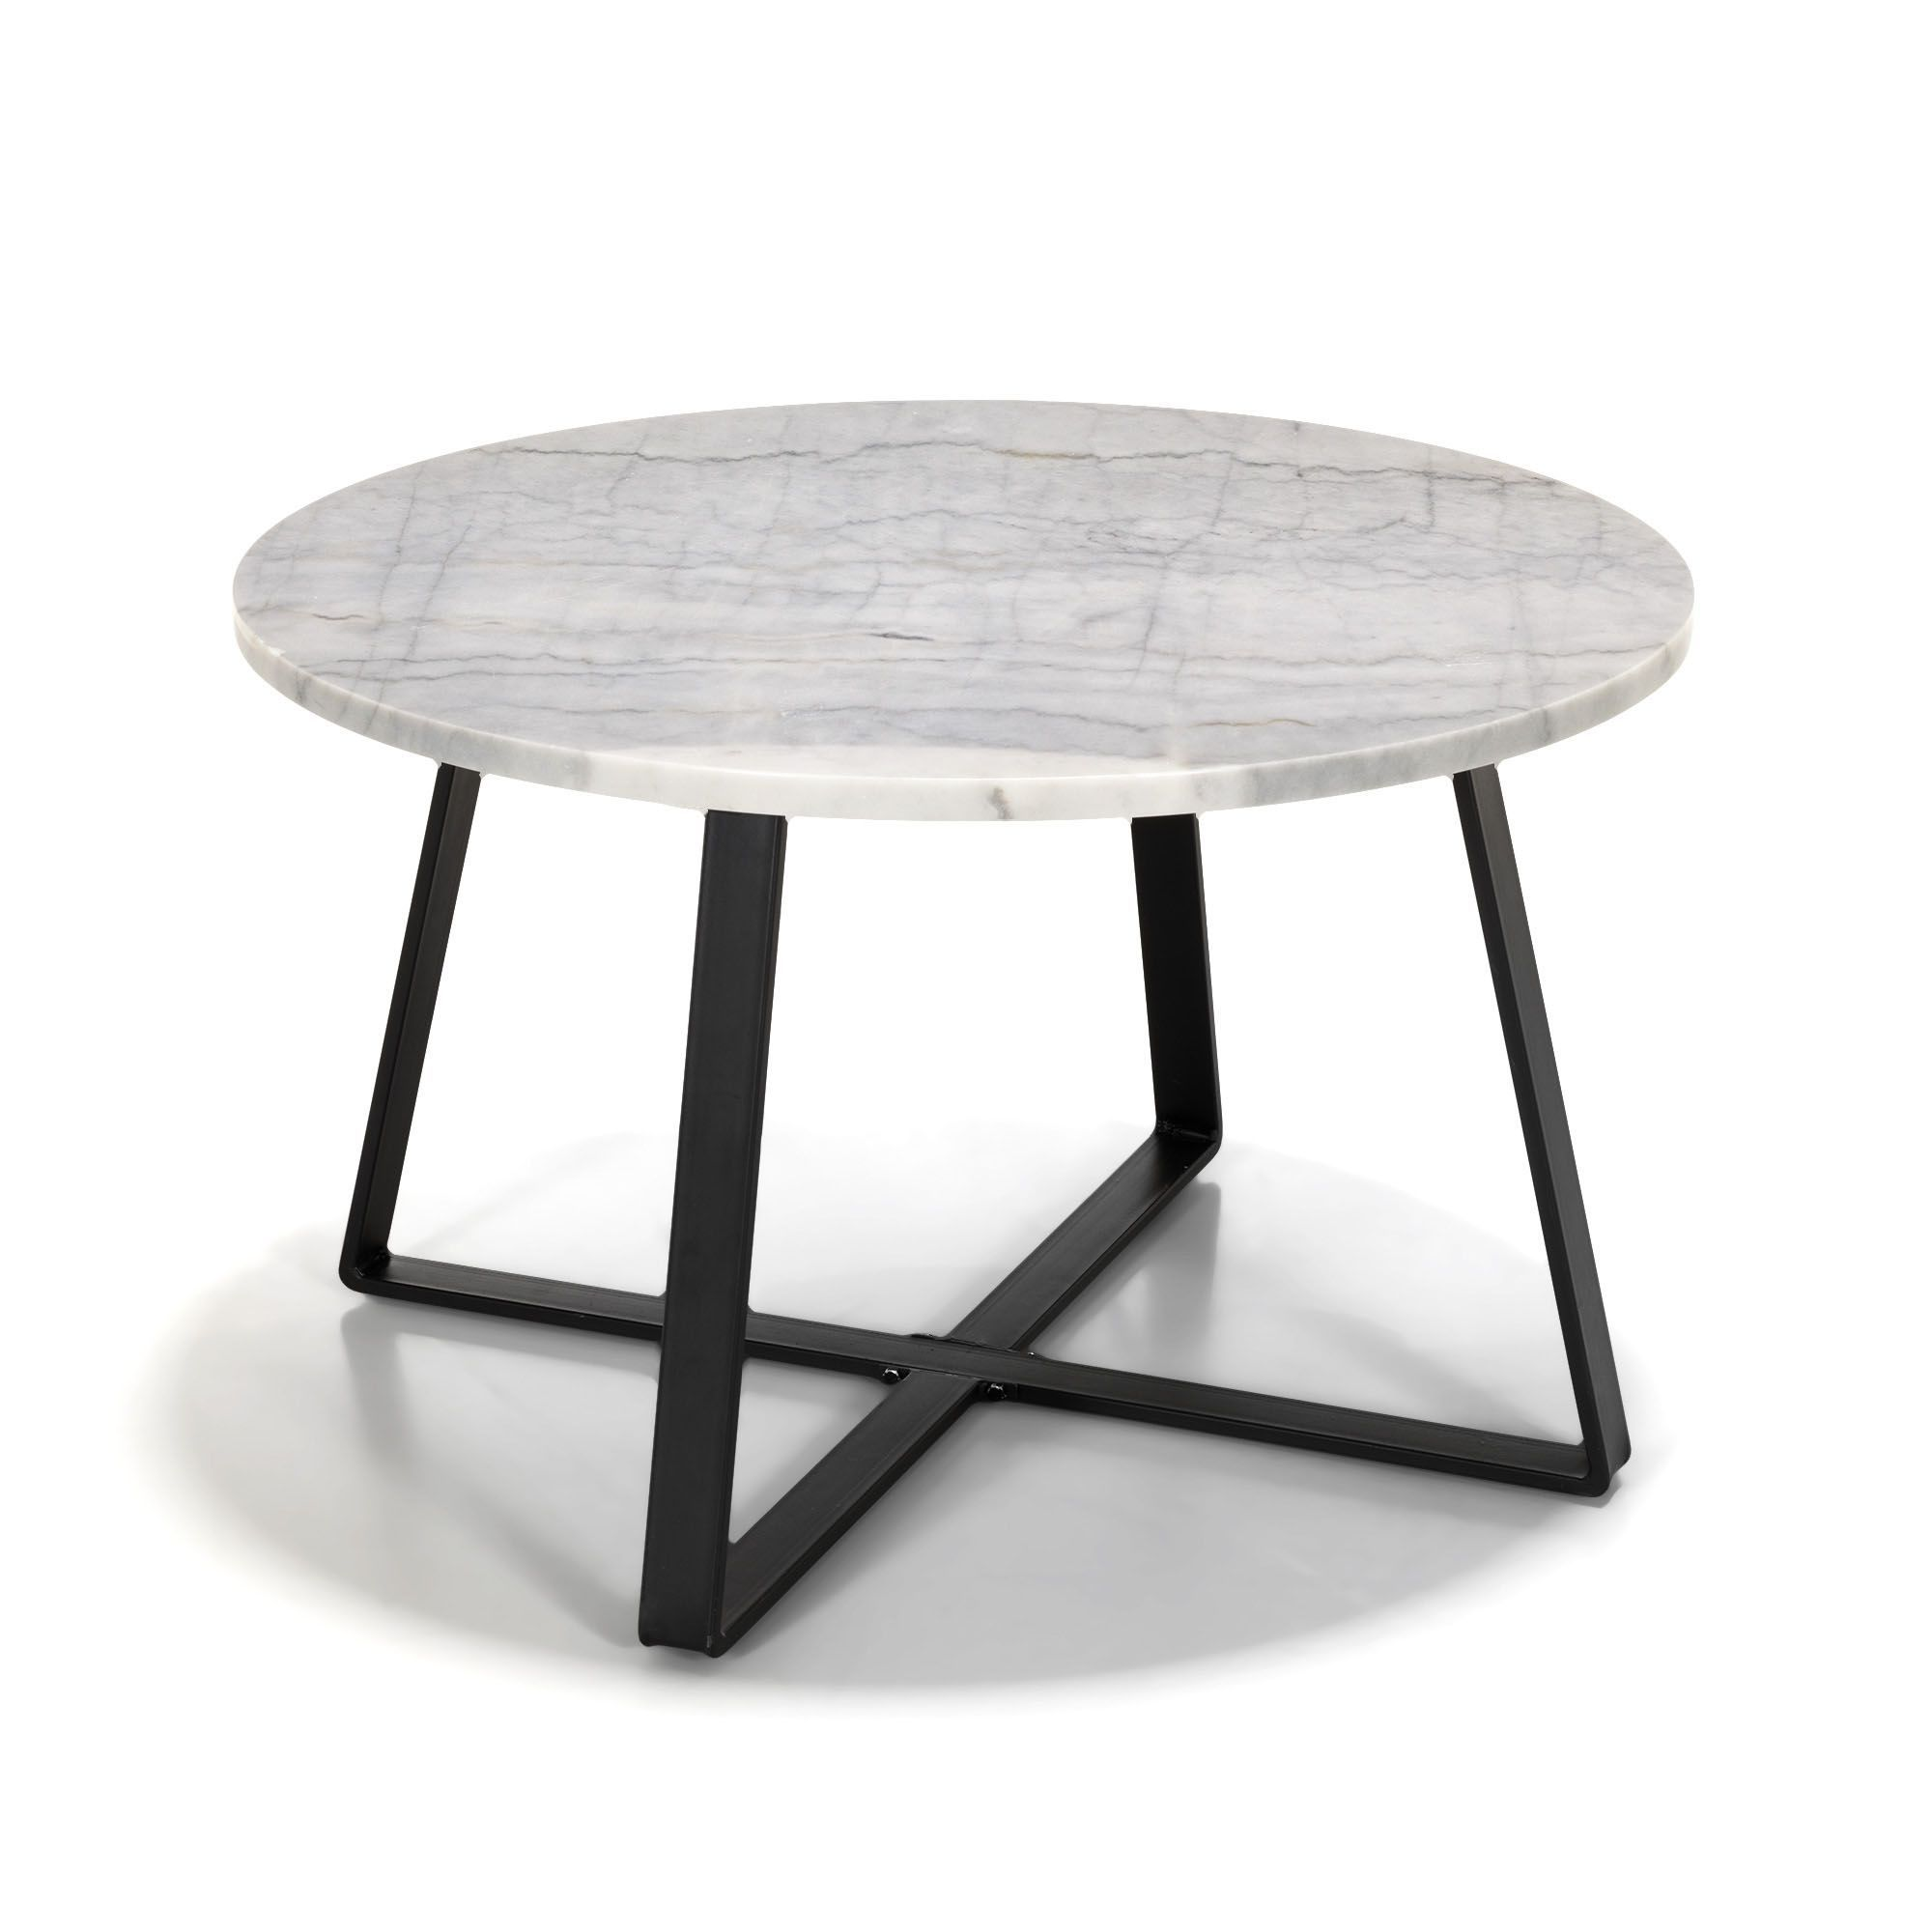 Table basse en m tal avec plateau en marbre blanc et noir for Table basse marbre